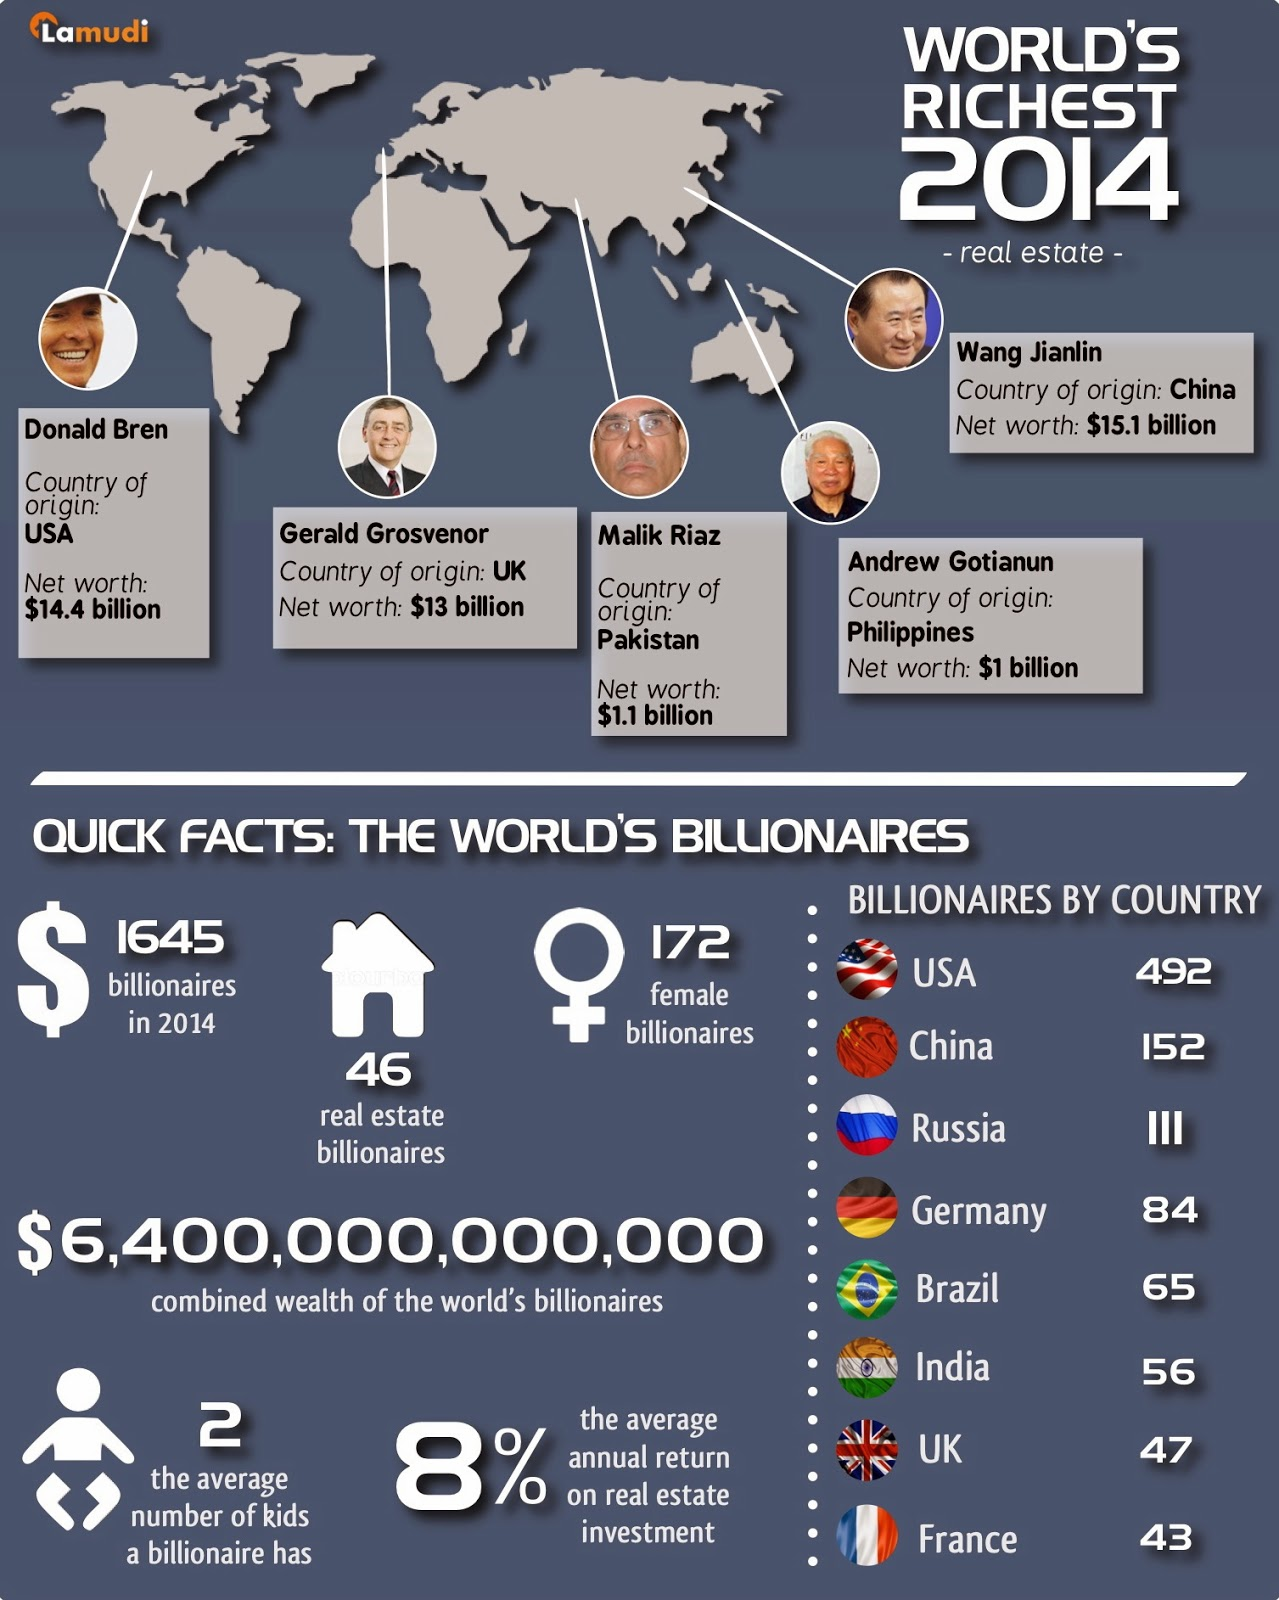 World's Richest 2014 Infographic